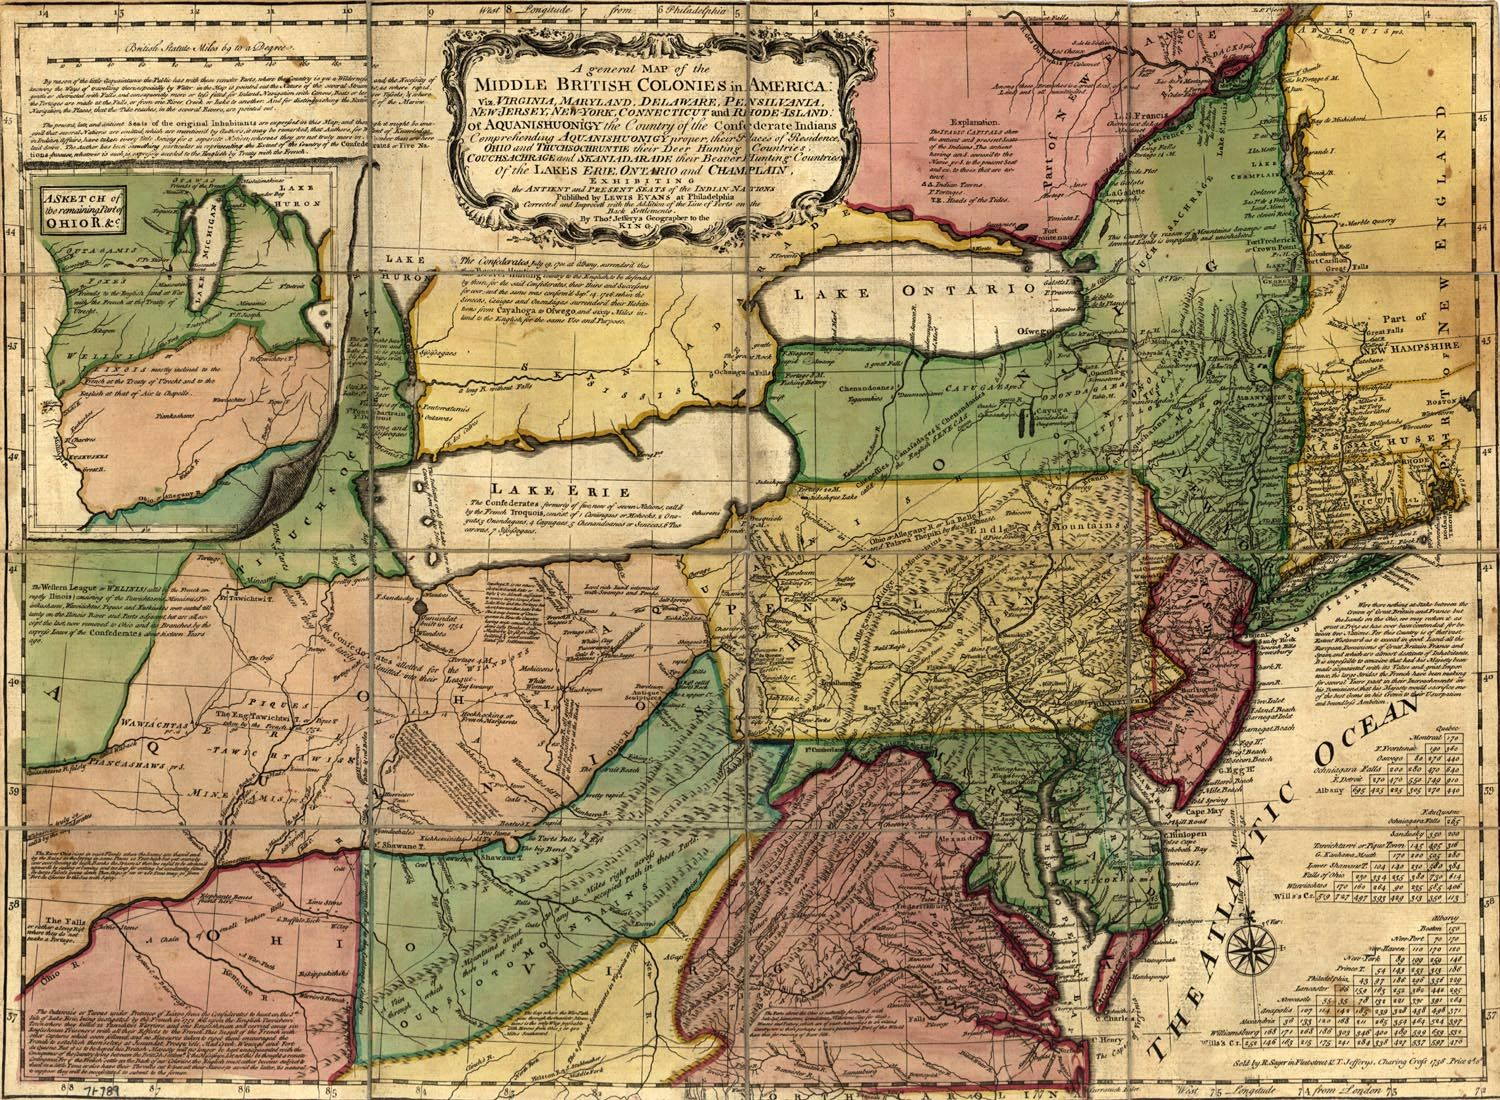 Middle british colonies in america 1758 map usa maps pinterest middle british colonies in america 1758 map usa gumiabroncs Gallery